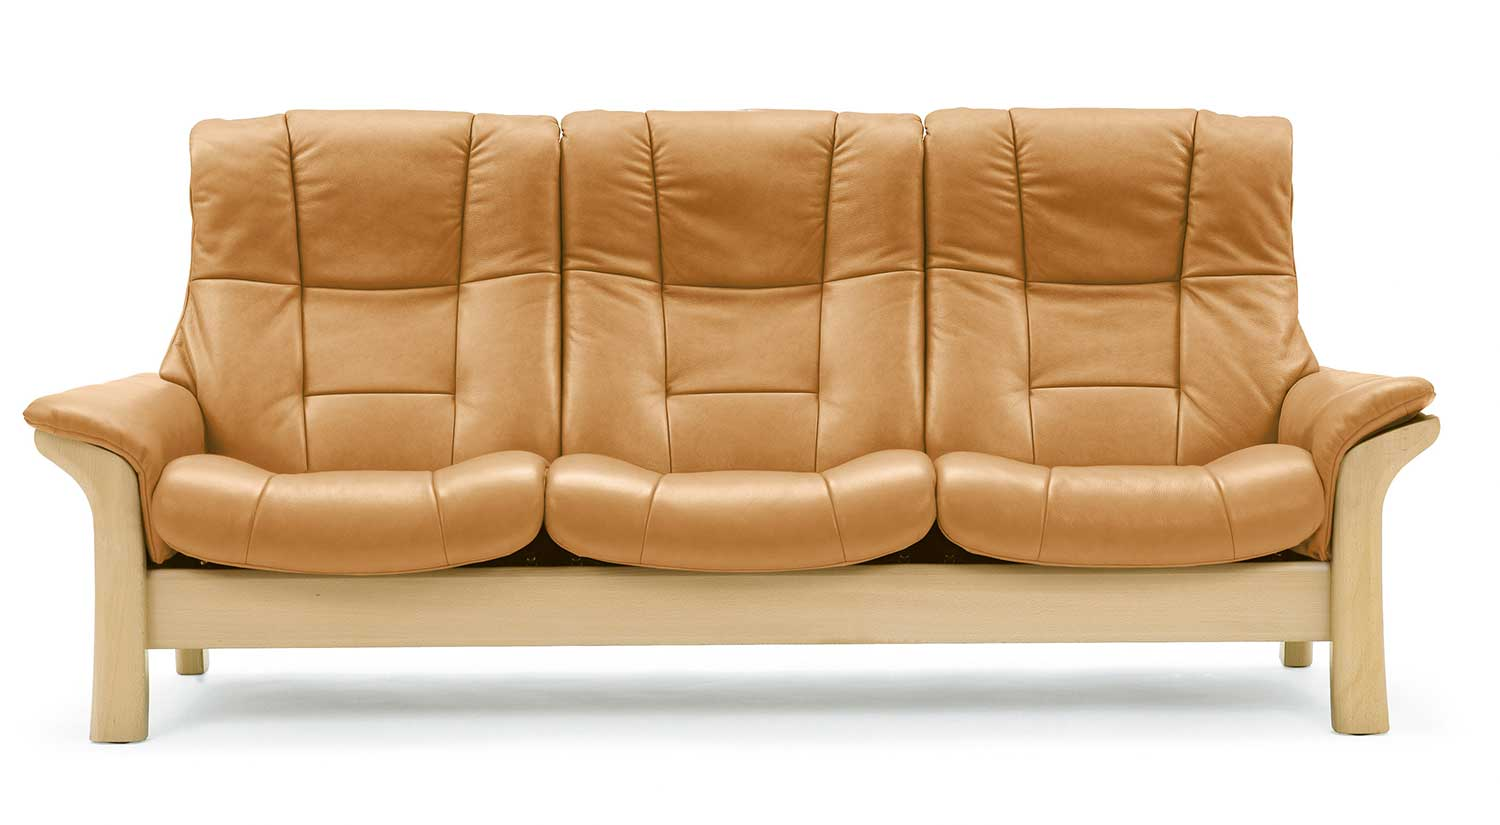 stressless sofa preise circle furniture manhattan ekornes. Black Bedroom Furniture Sets. Home Design Ideas